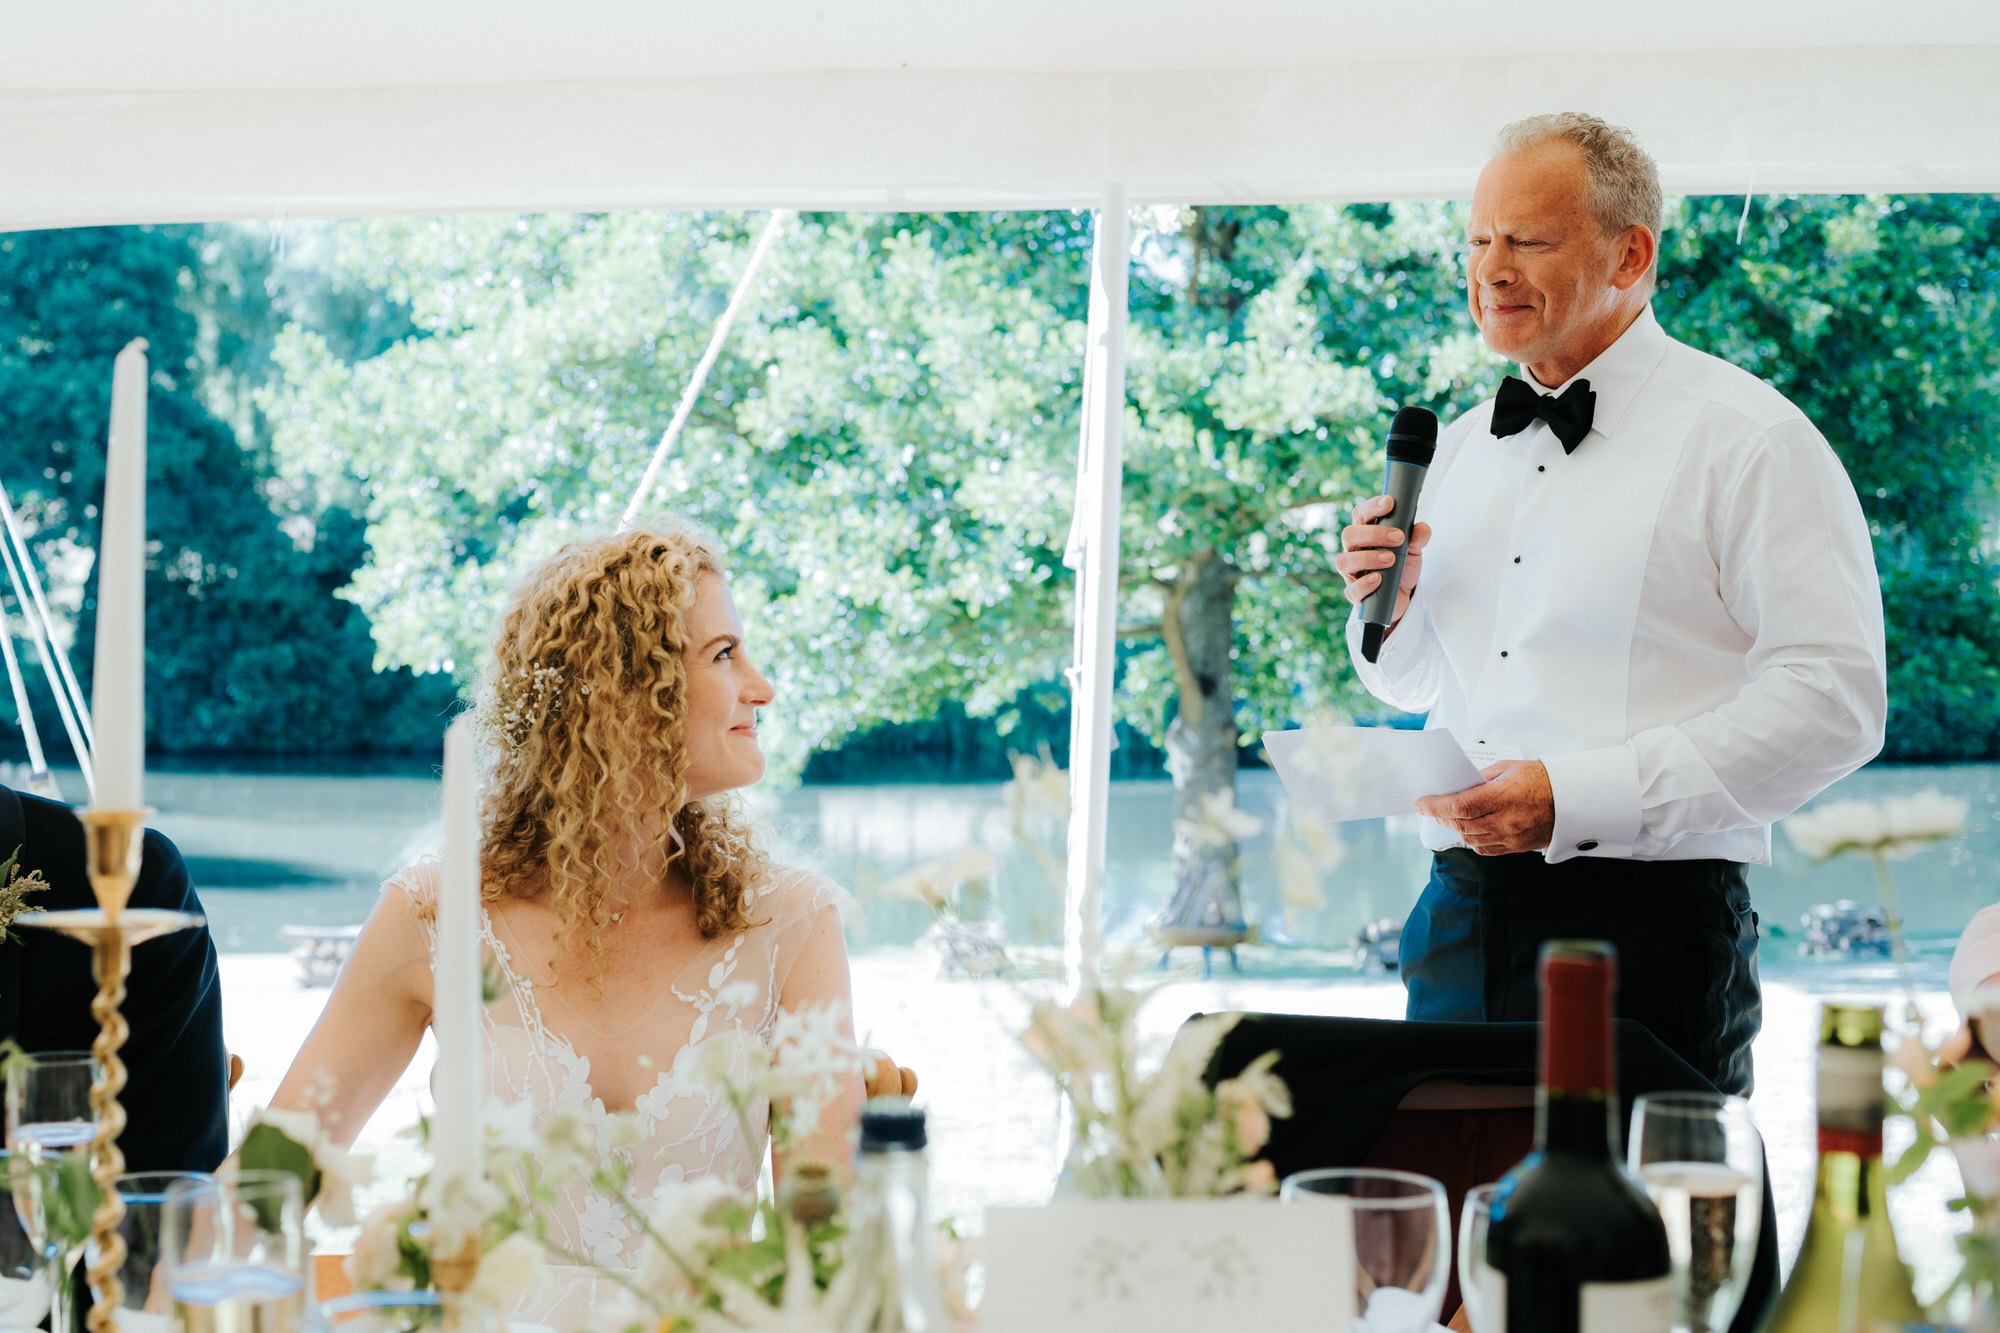 Father of bride looks at daughter during his speech